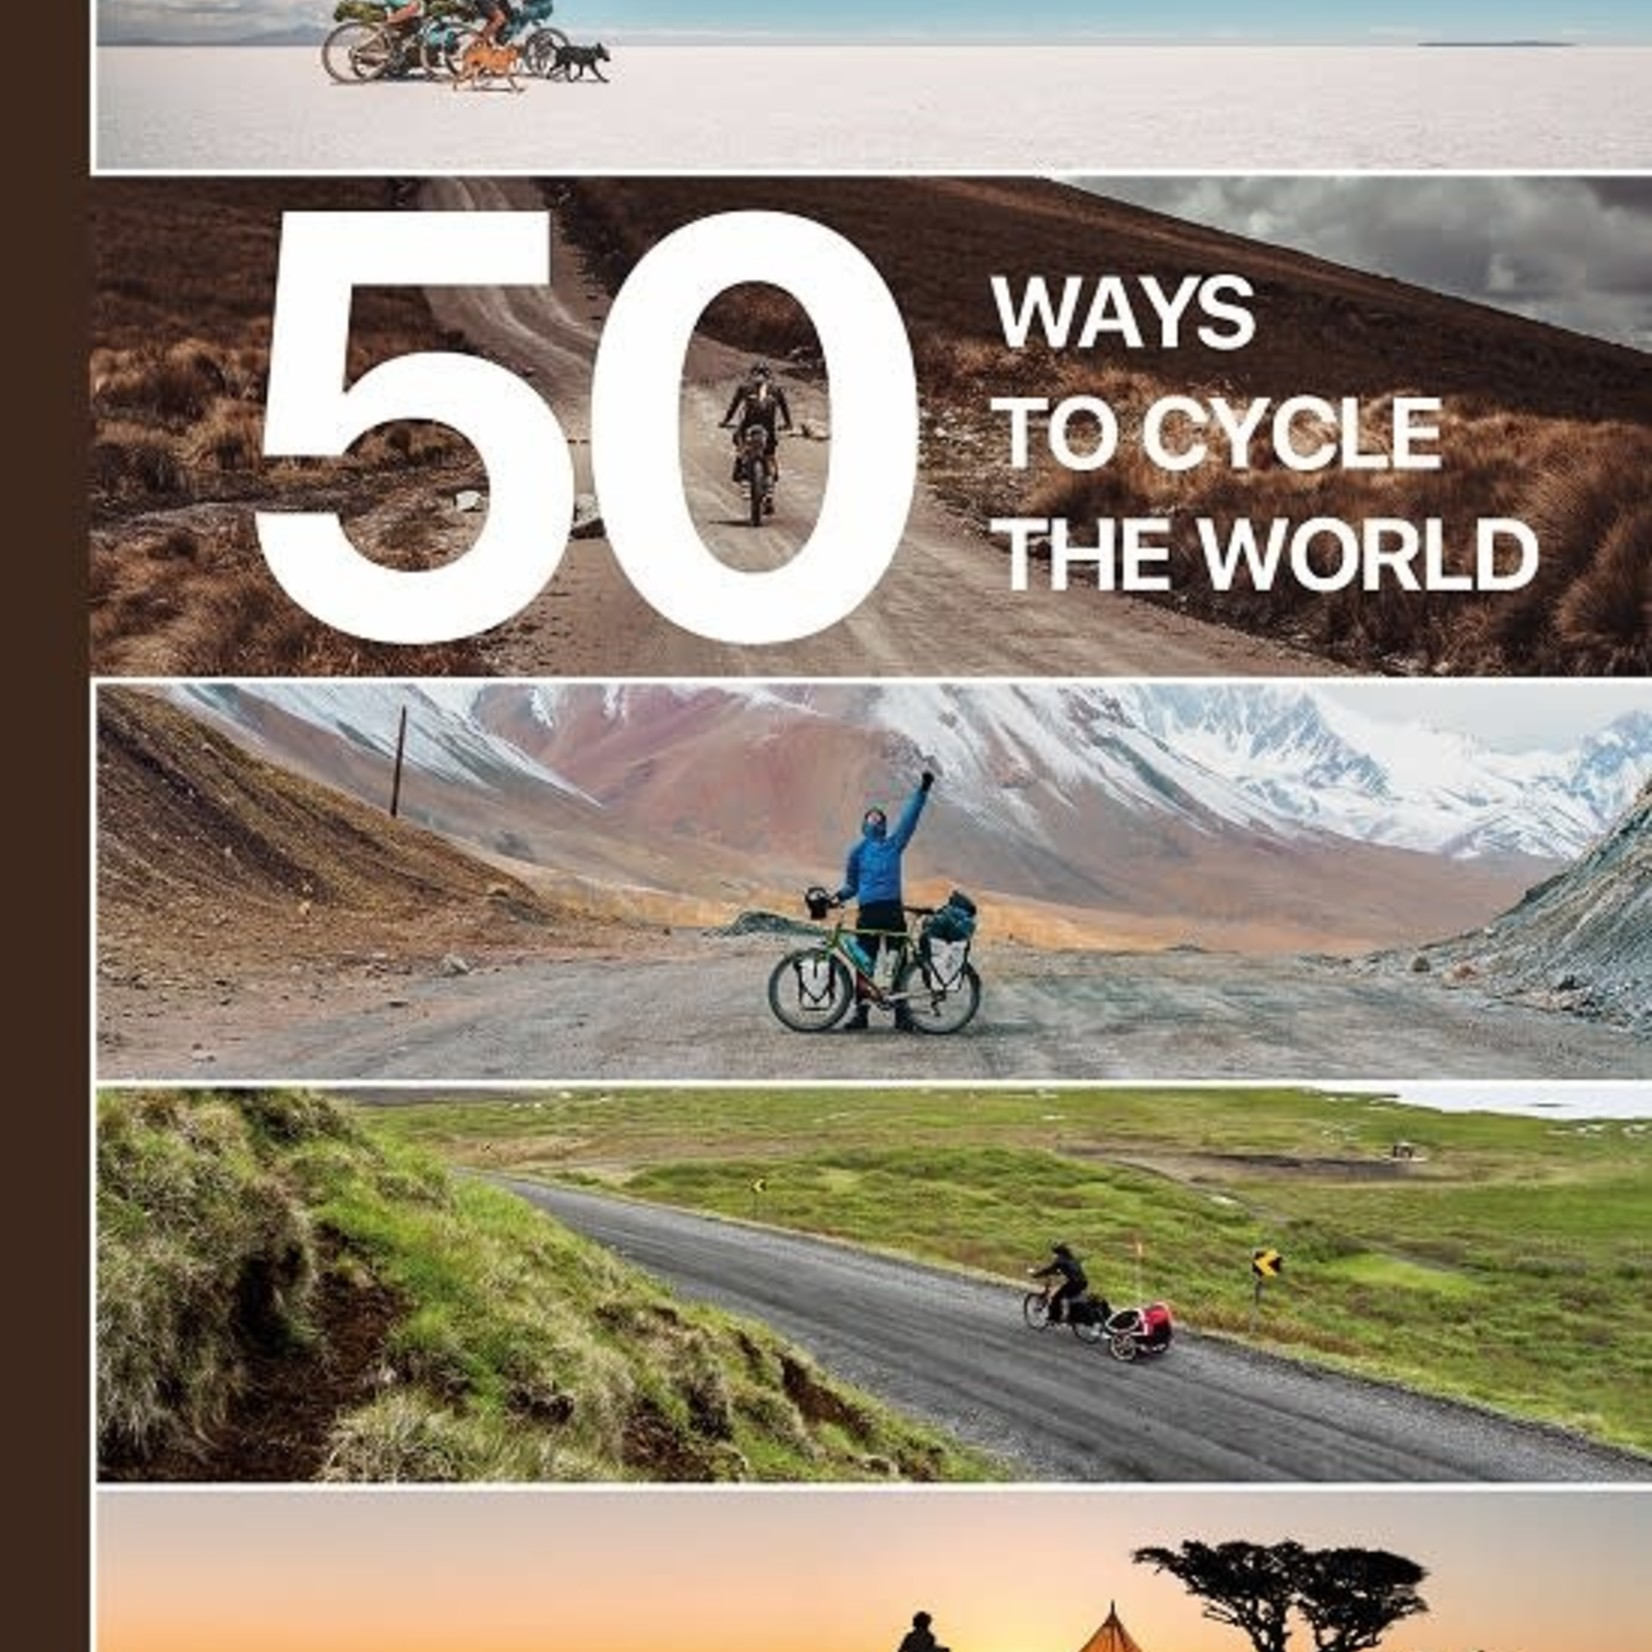 '50 ways to cycle the world' Belén Castello